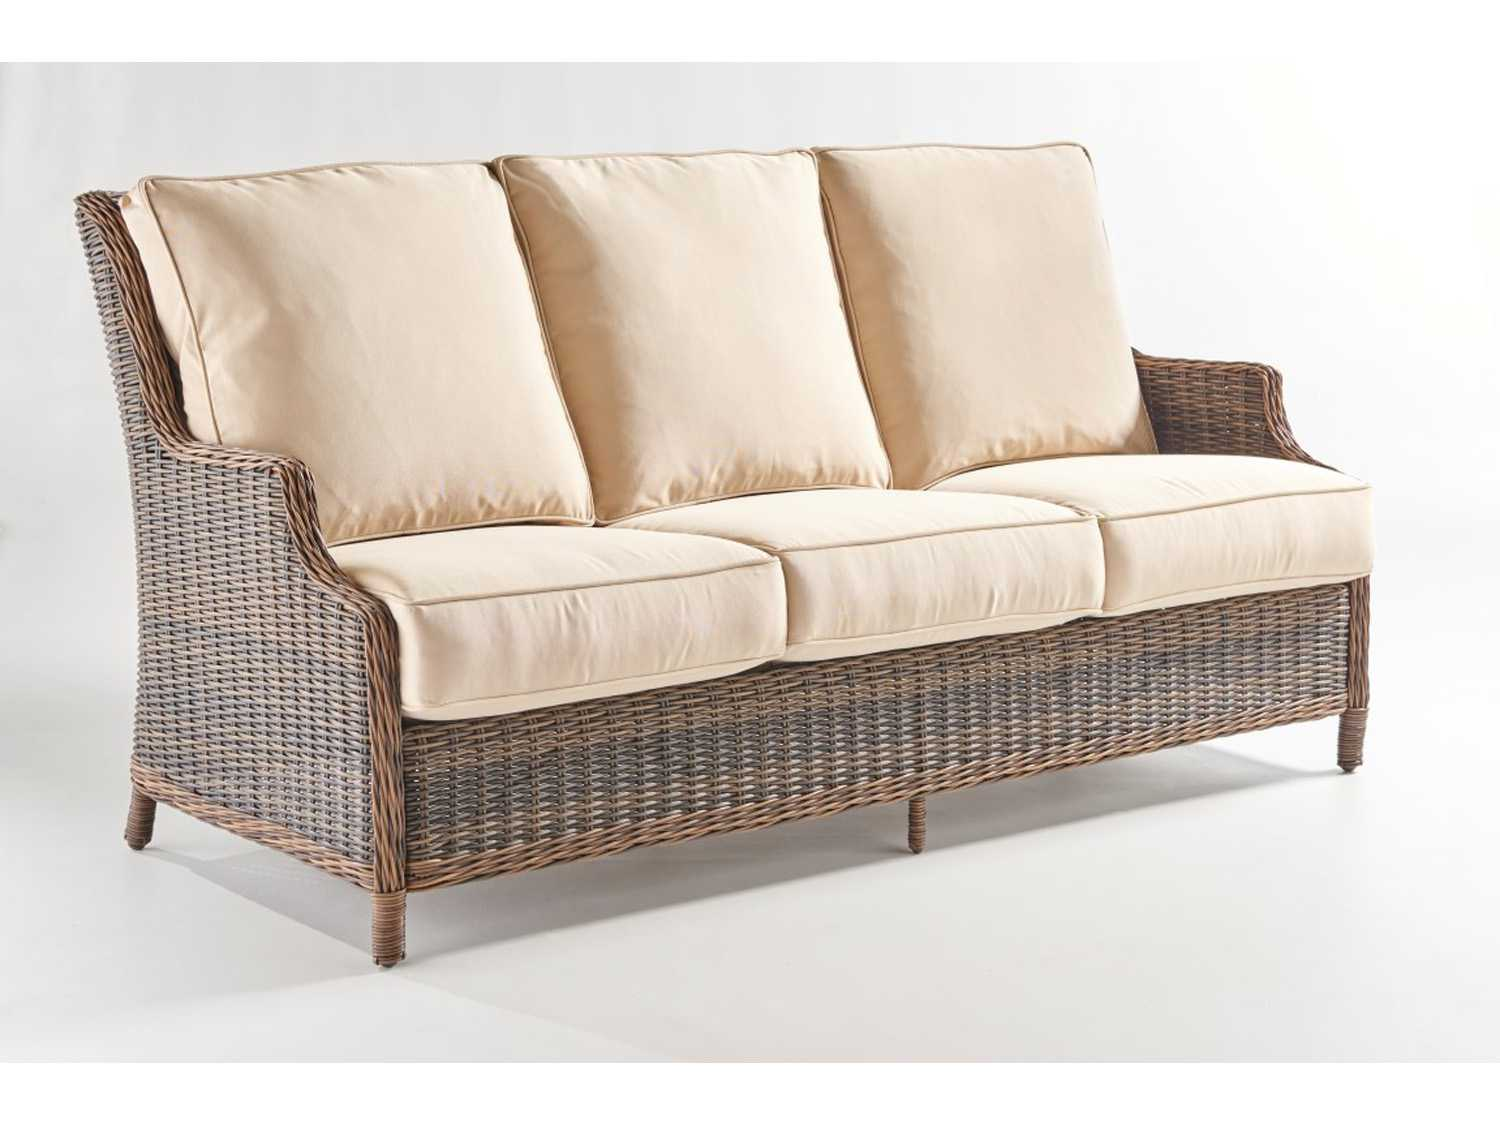 Rattan Sofa South Sea Rattan Barrington Wicker Sofa